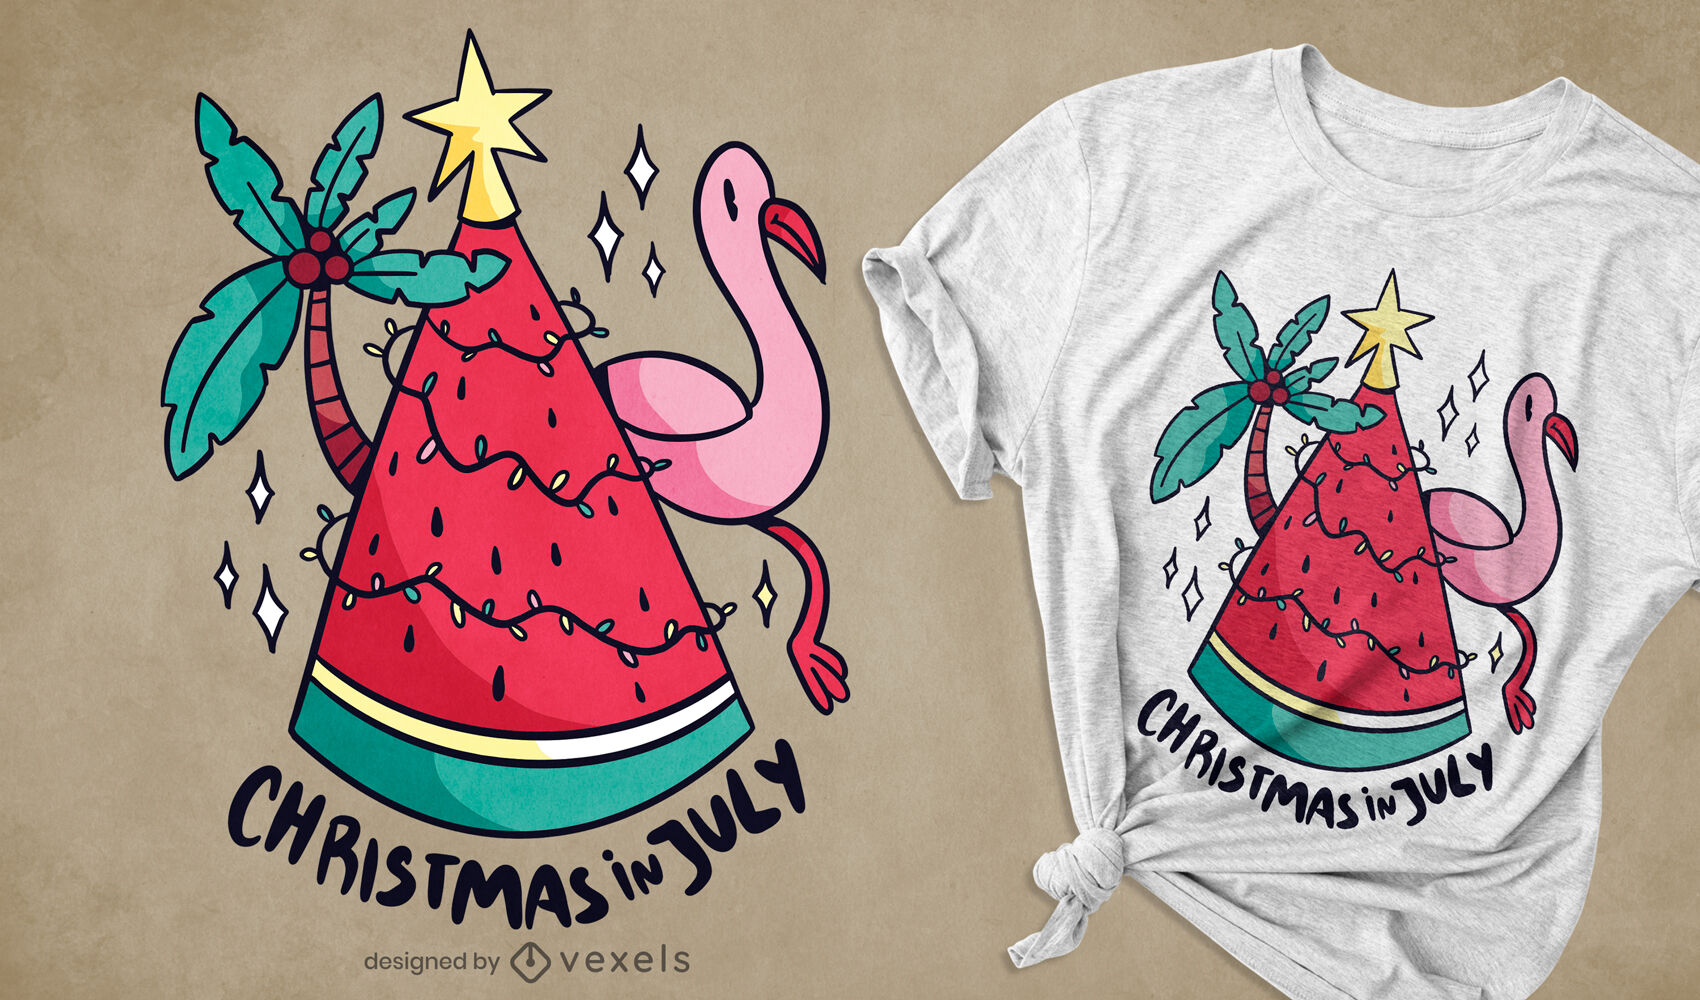 Christmas in july t-shirt design